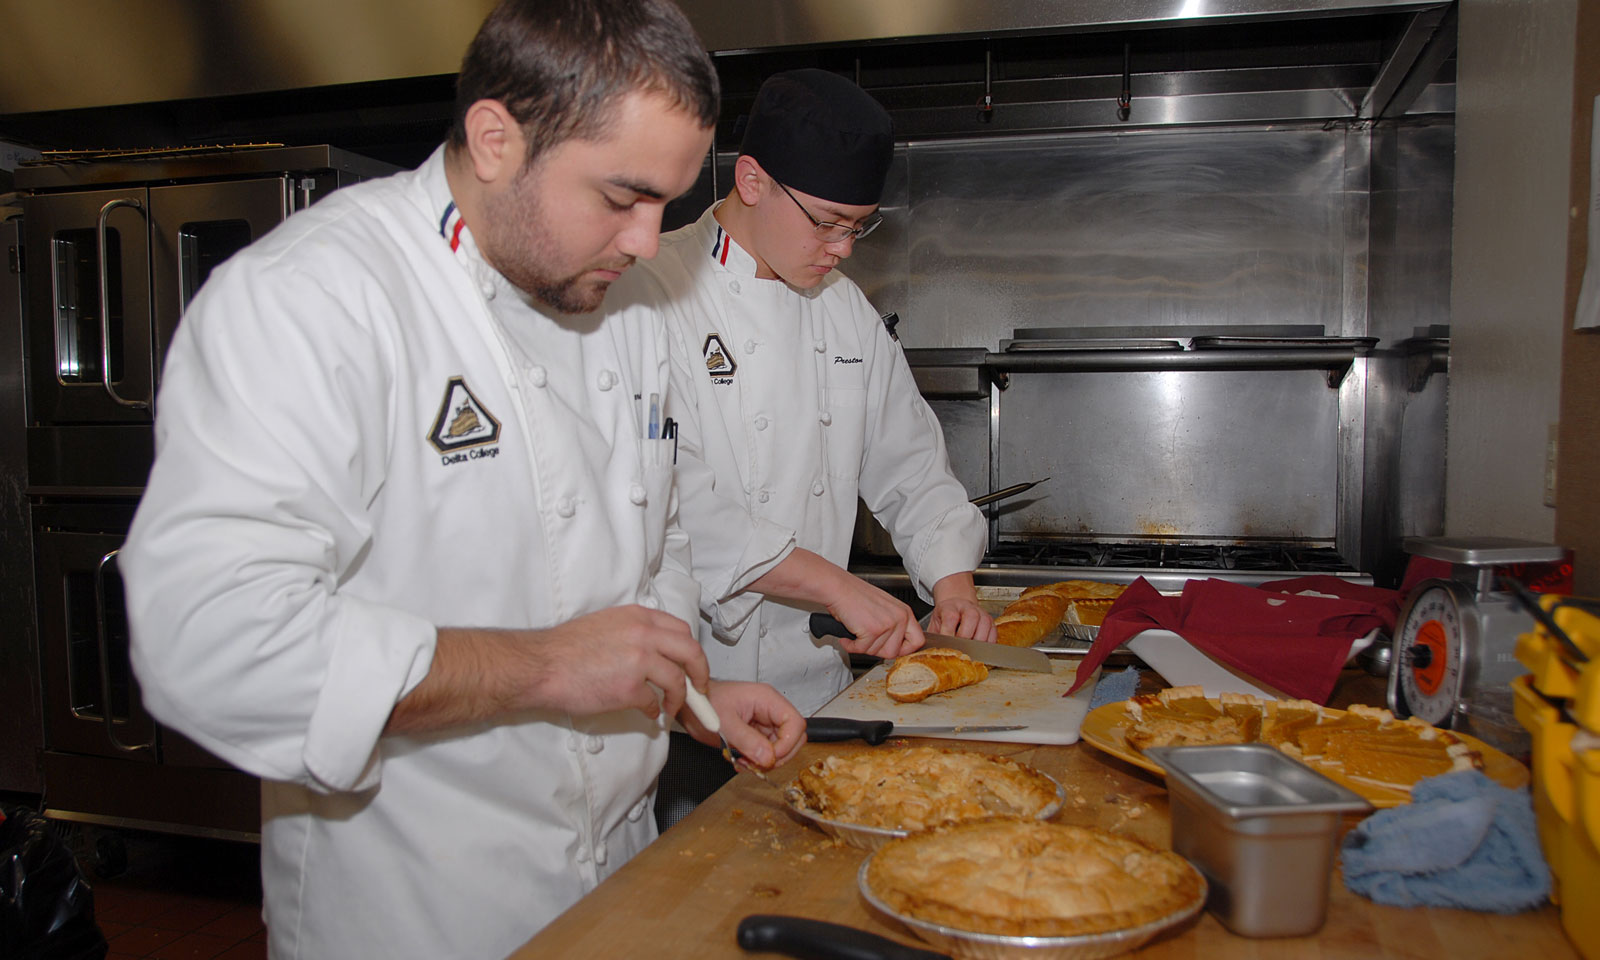 Students cut a pie during Culinary Arts Lab class.